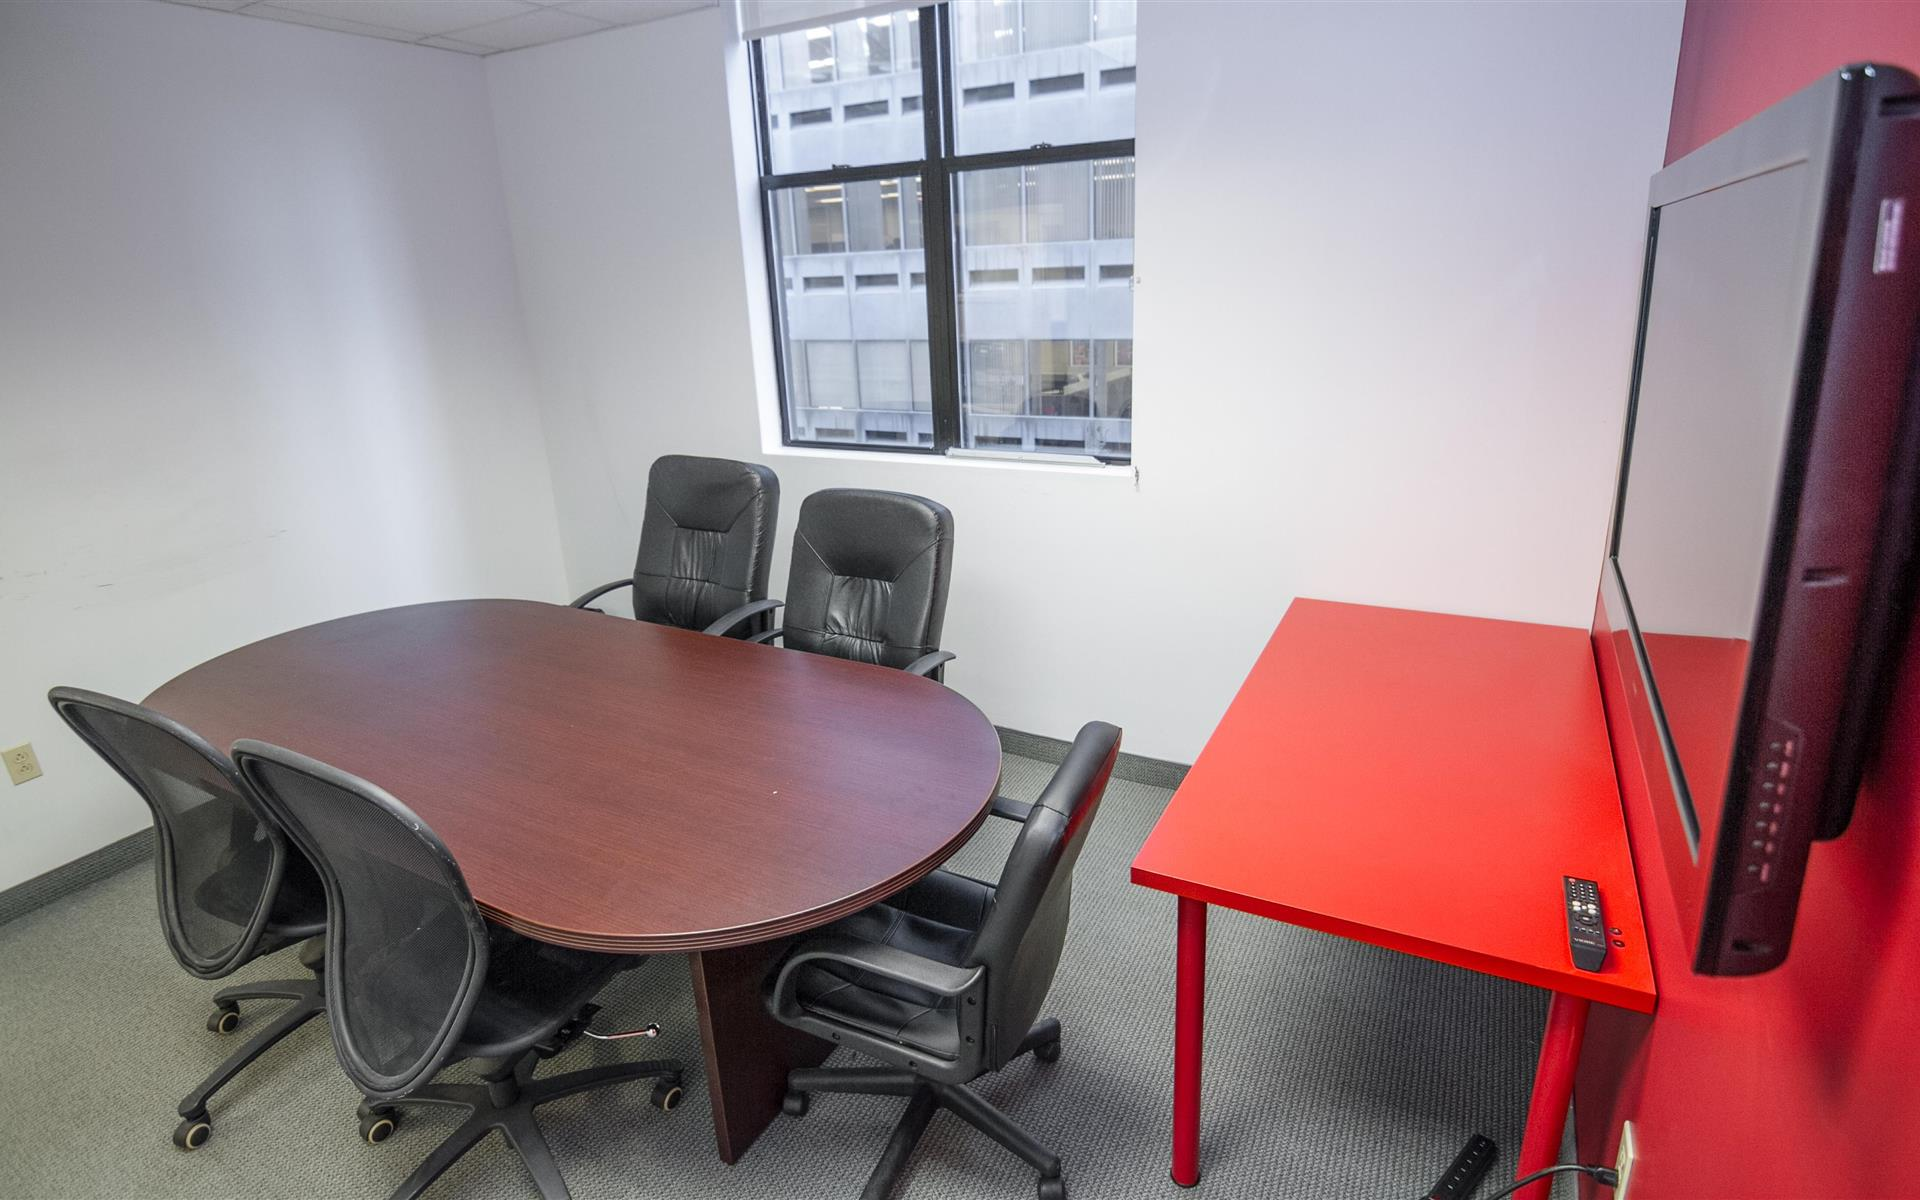 295 Devonshire - Financial District - Team Office Space